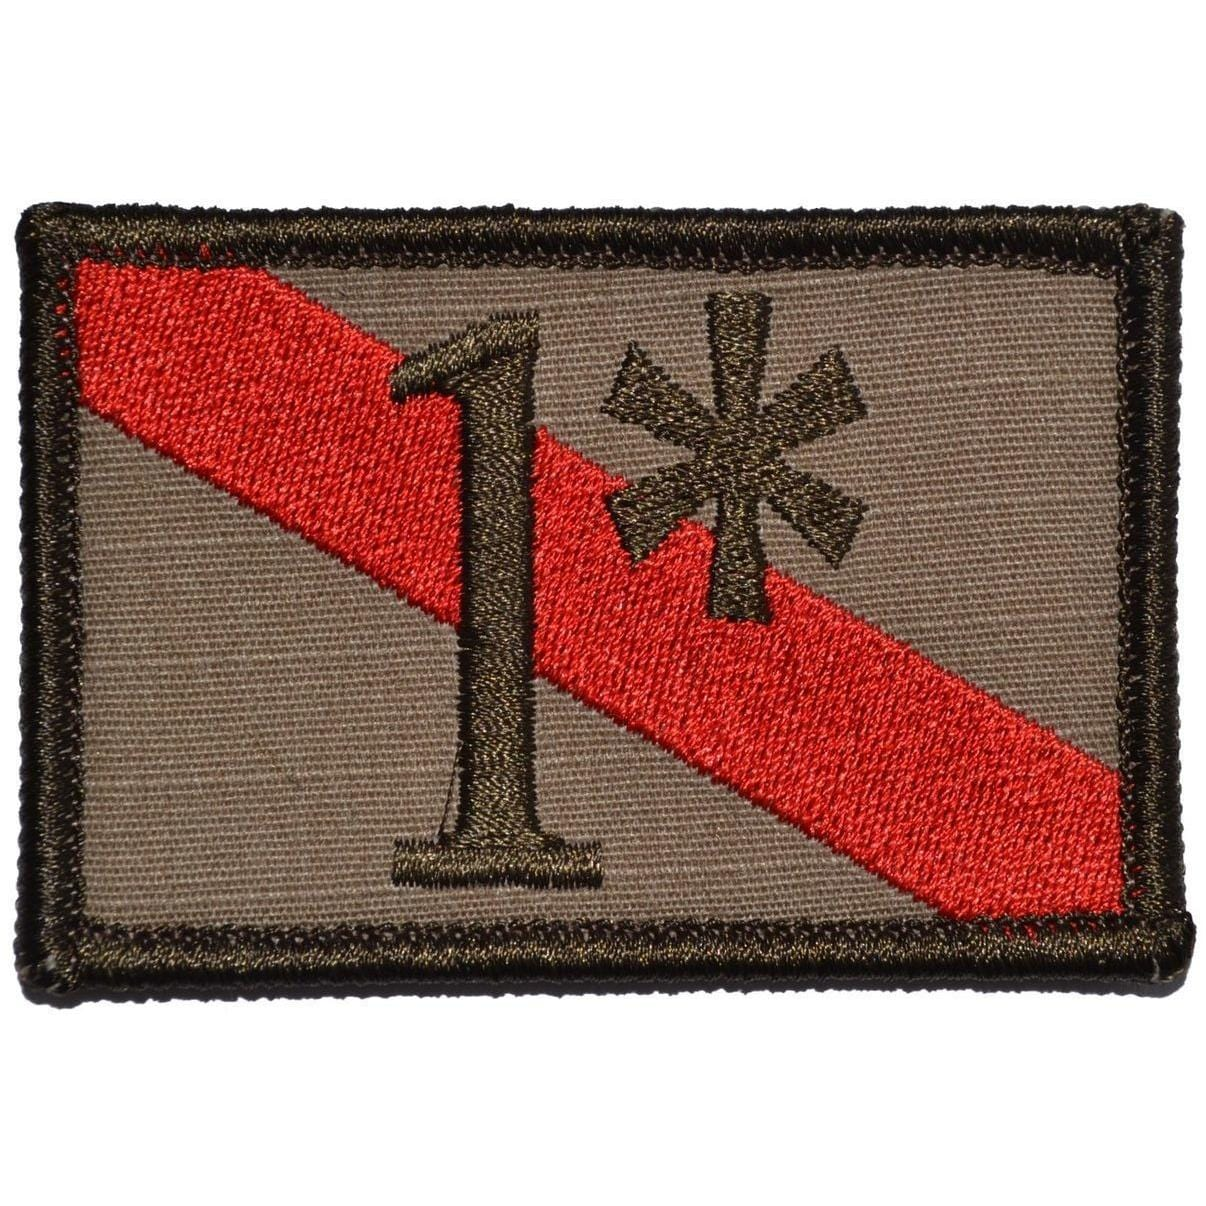 Firefighter 1* One Ass to Risk Thin Red Line - 2x3 Patch